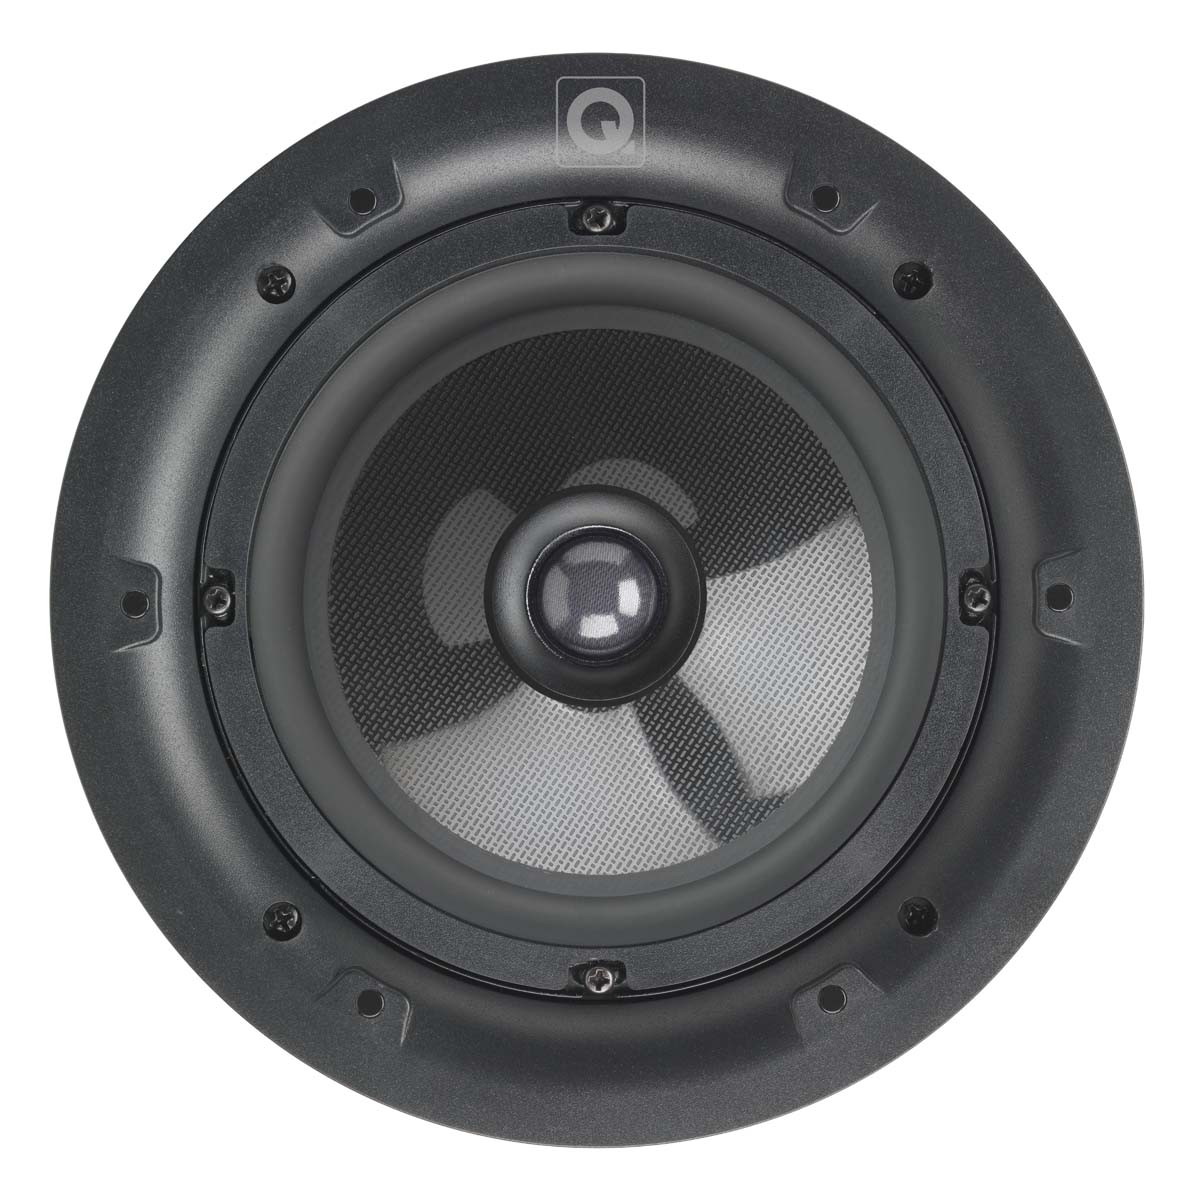 Q-Acoustics Qi65SP Ceiling Speaker